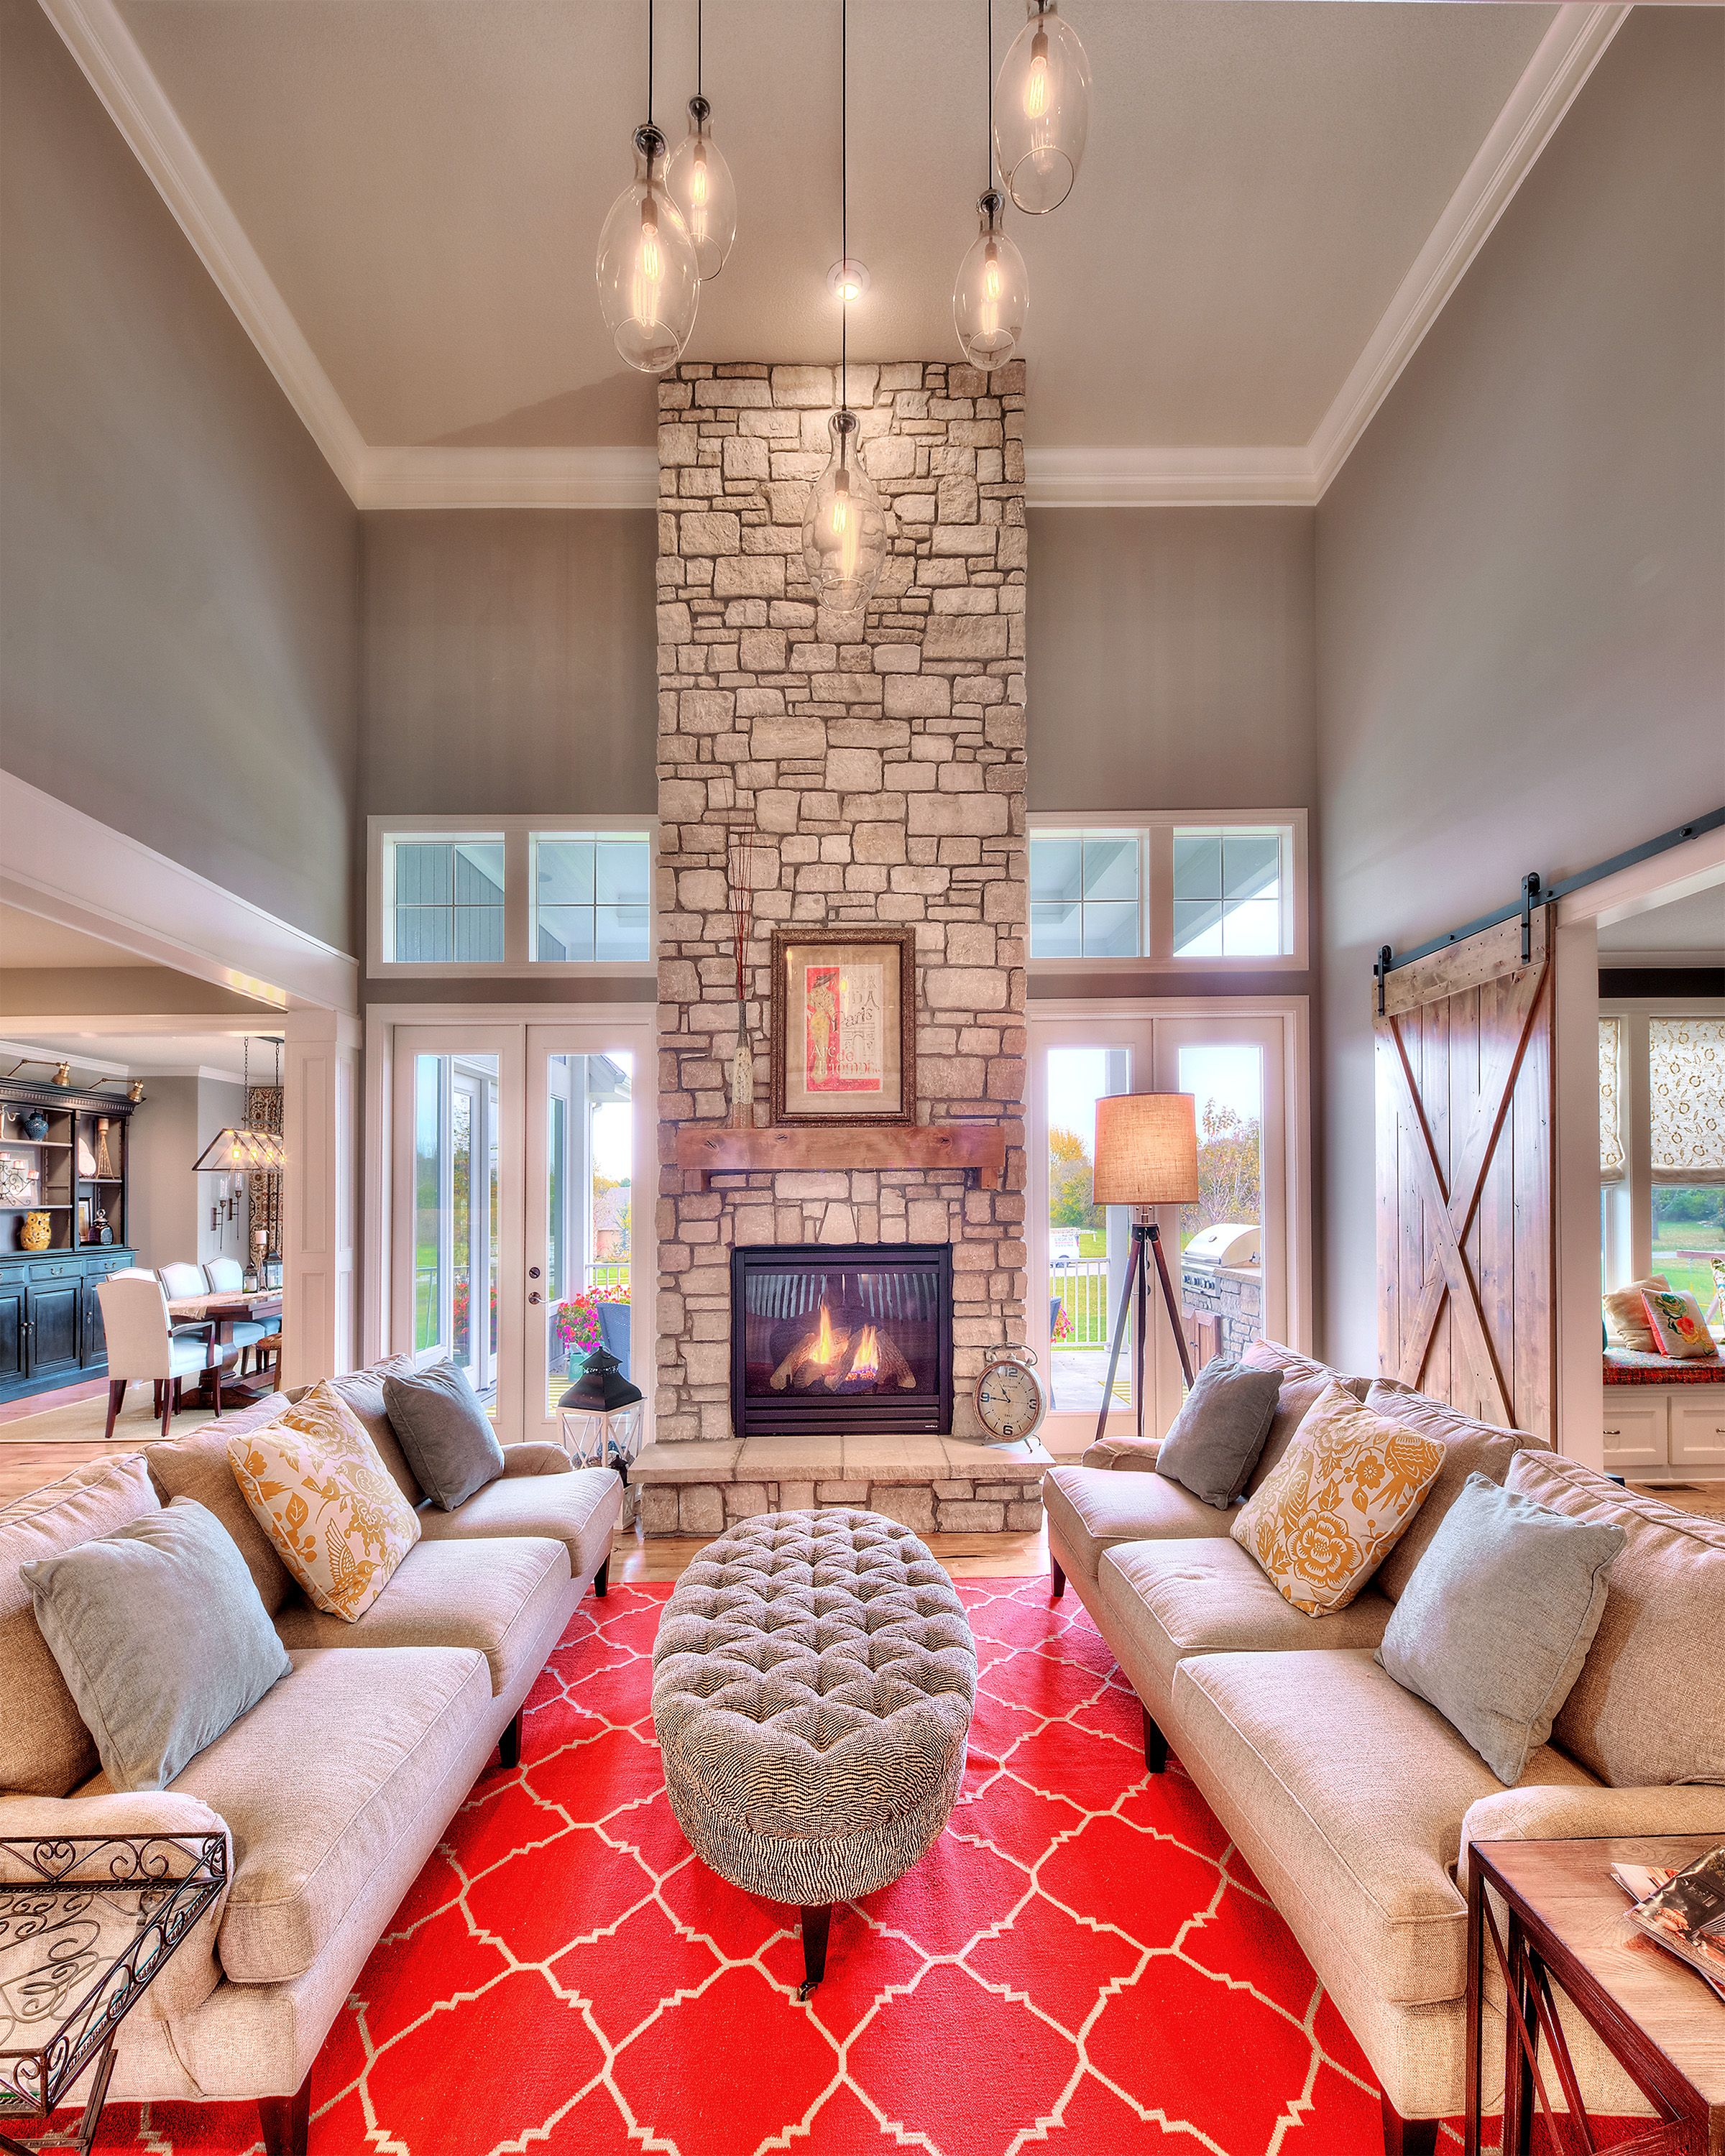 Hearthroom: Floor To Ceiling Fireplace, Stone Fireplace